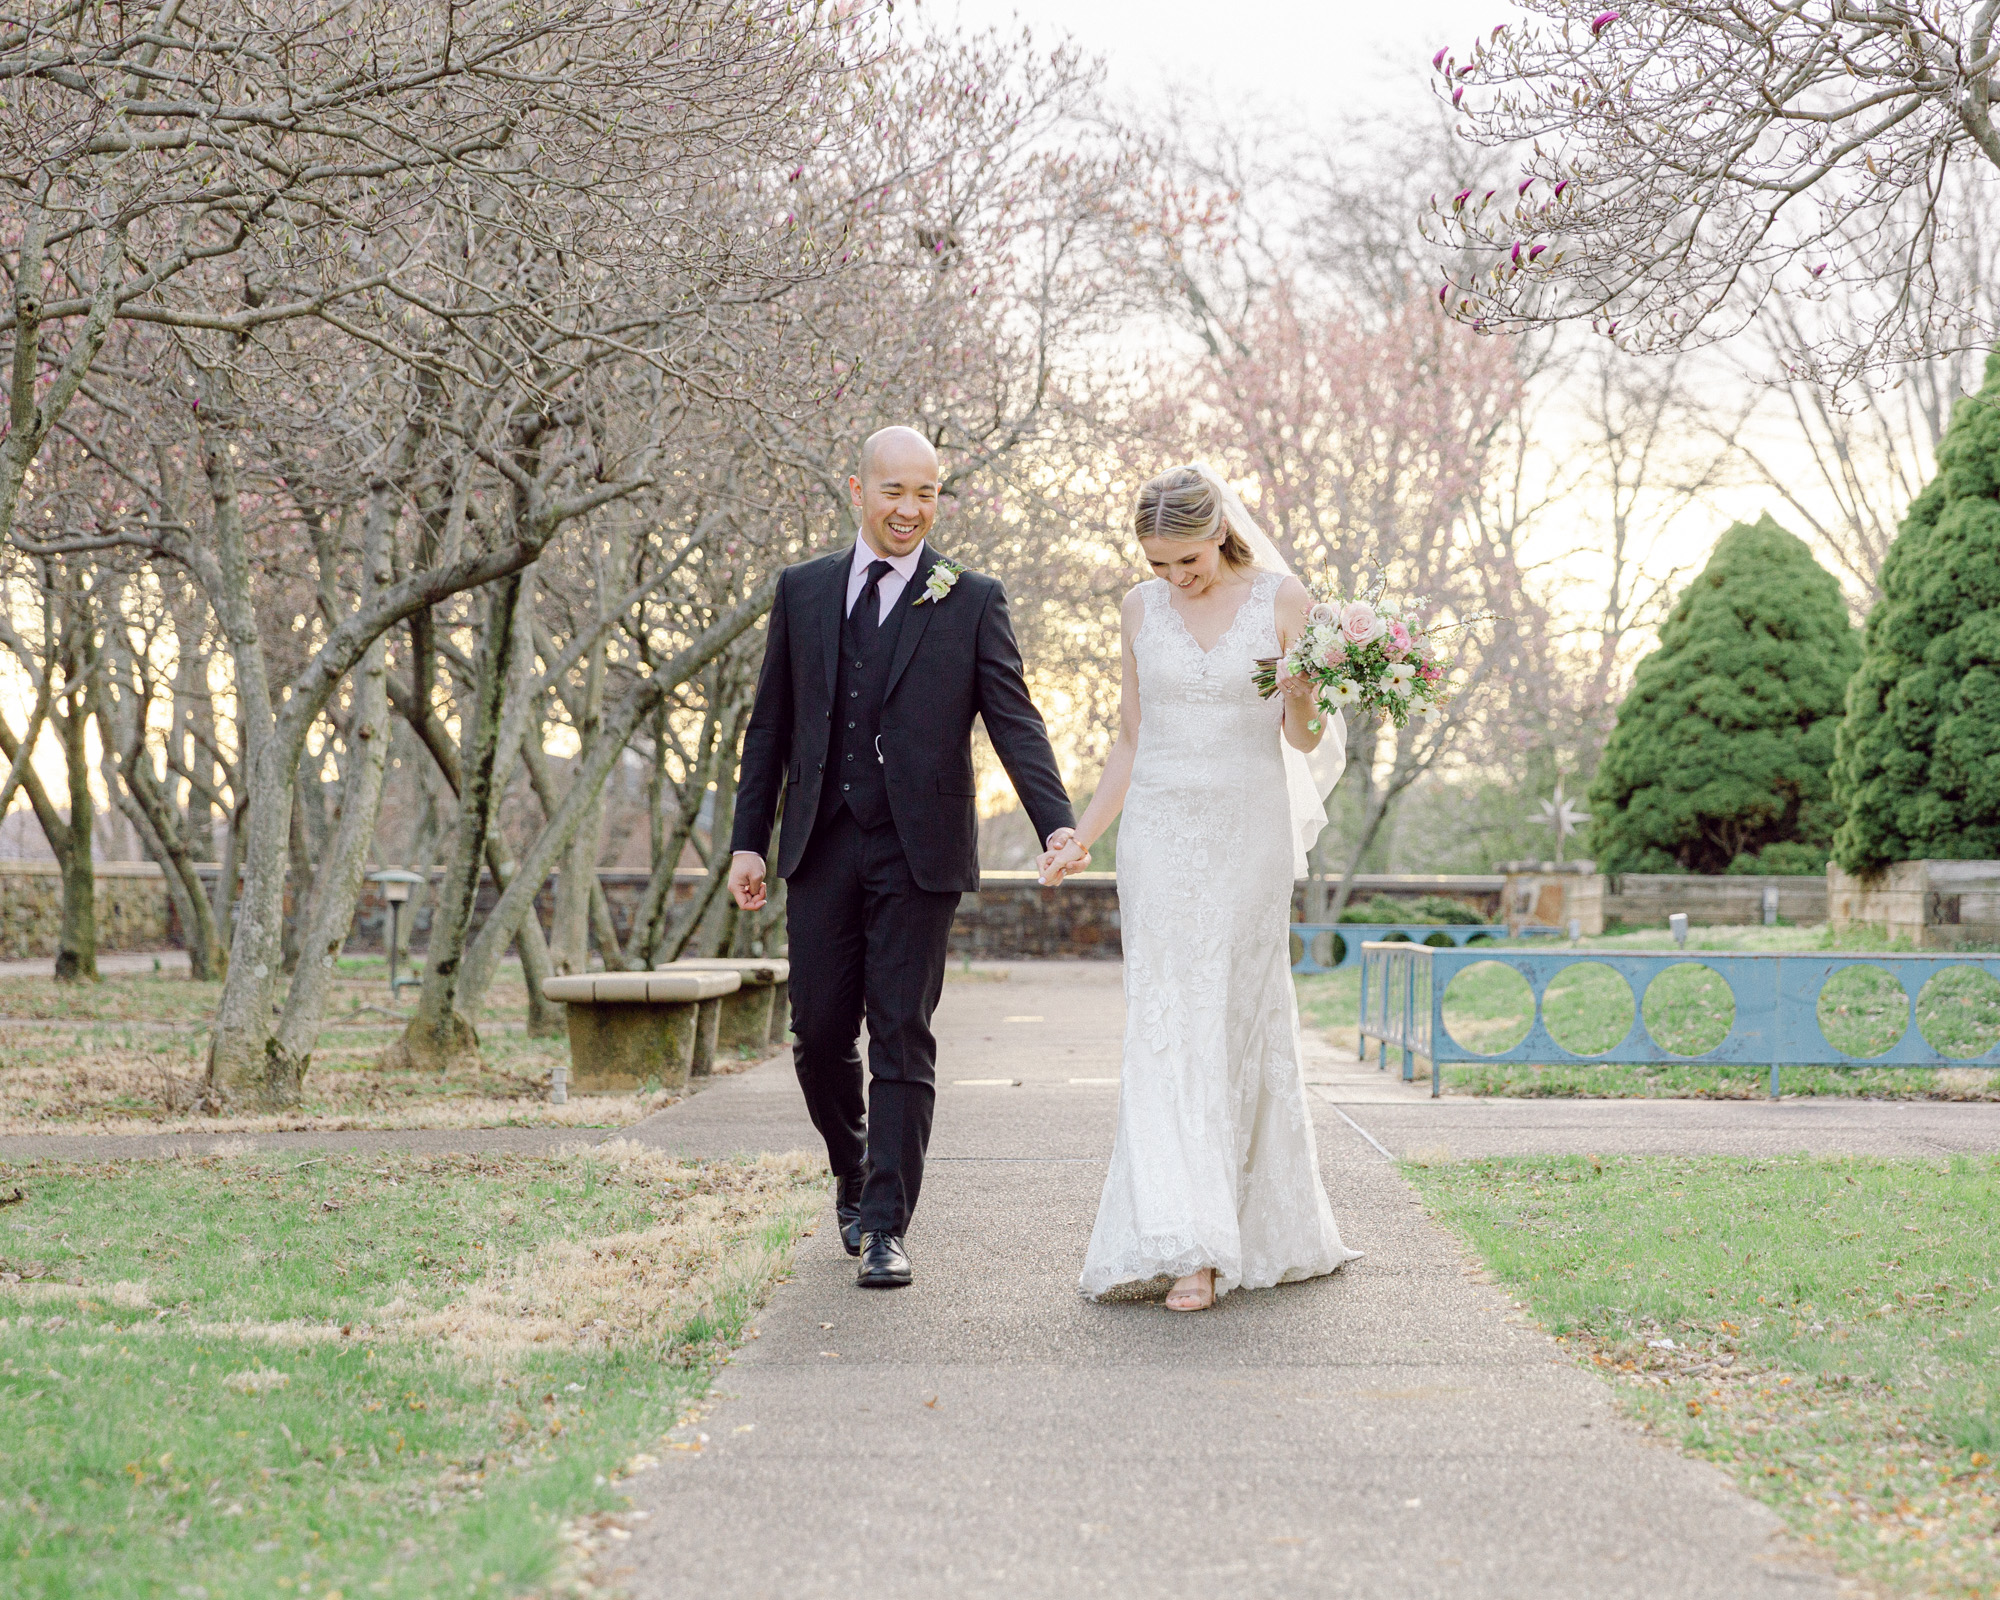 Elegant bride and groom stroll hand in hand under magnolia trees at sunset at the Bethlehem Area Public Library, Bethlehem, PA by Laura Billingham Photography